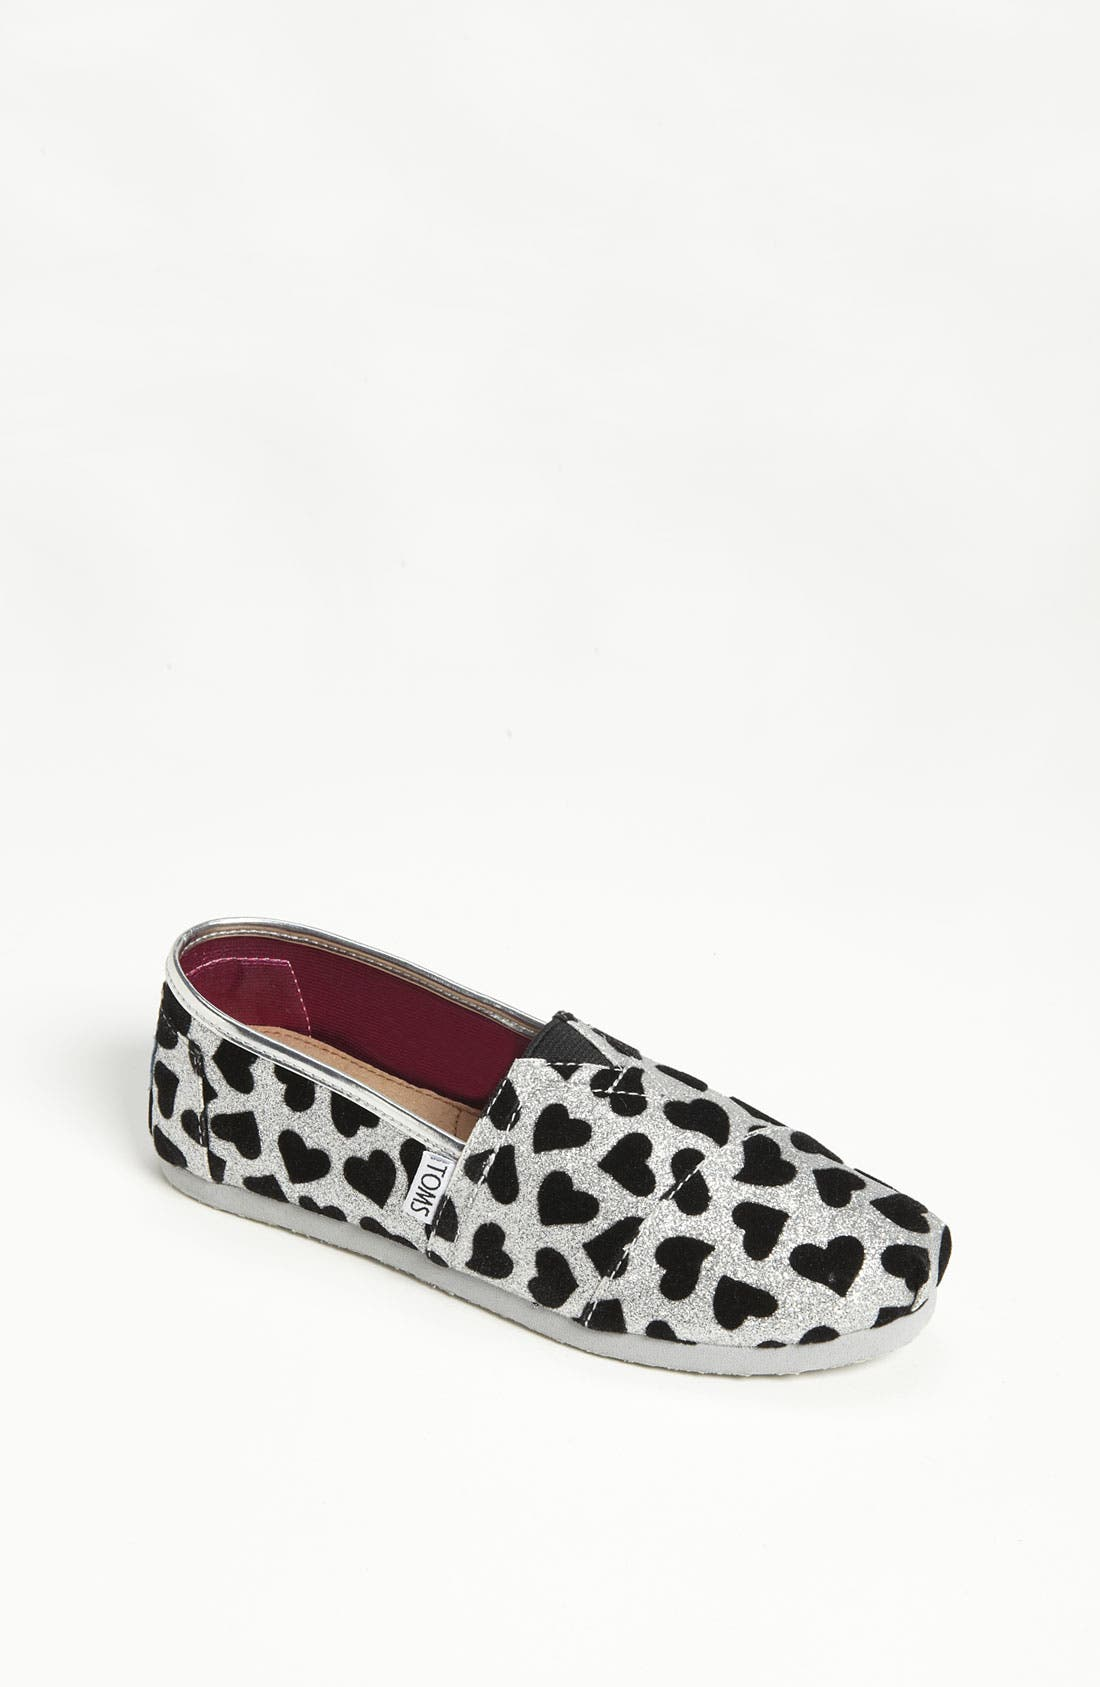 Alternate Image 1 Selected - TOMS 'Classic Youth - Hearts' Slip-On (Toddler, Little Kid & Big Kid)